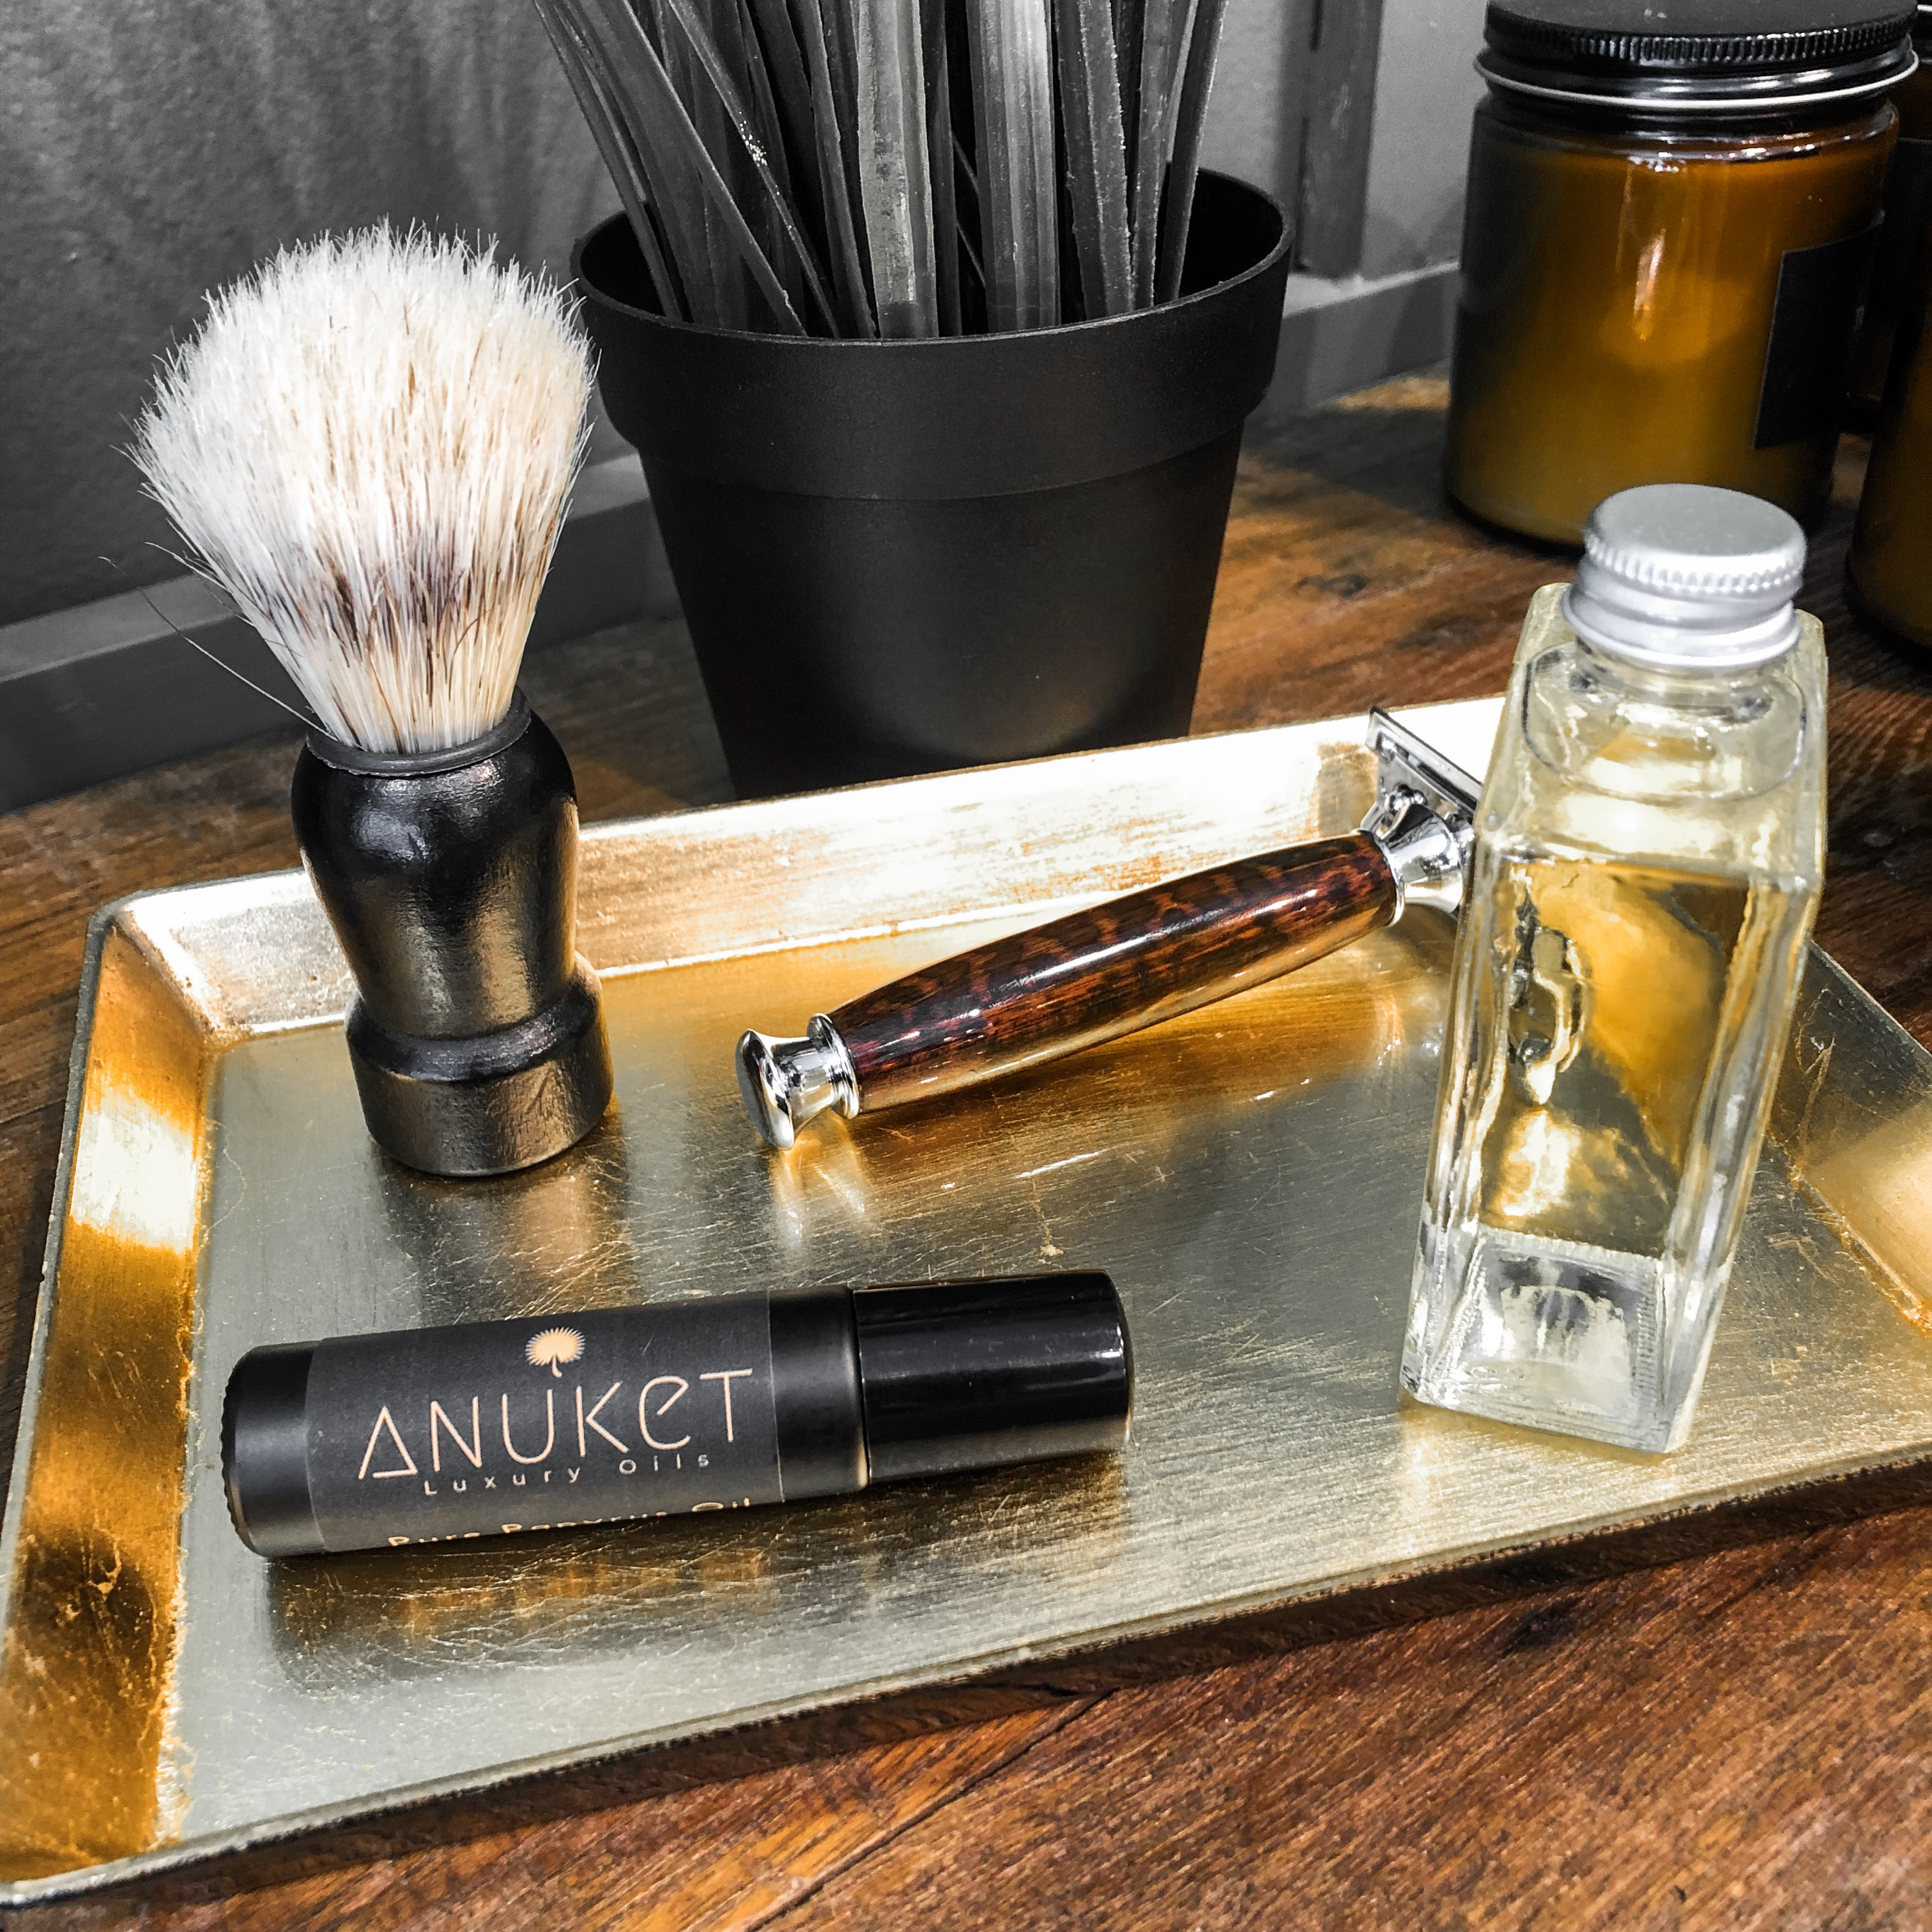 A bottle of Anuket Luxury Apothecary's papyrus oil with beard maintenance products.